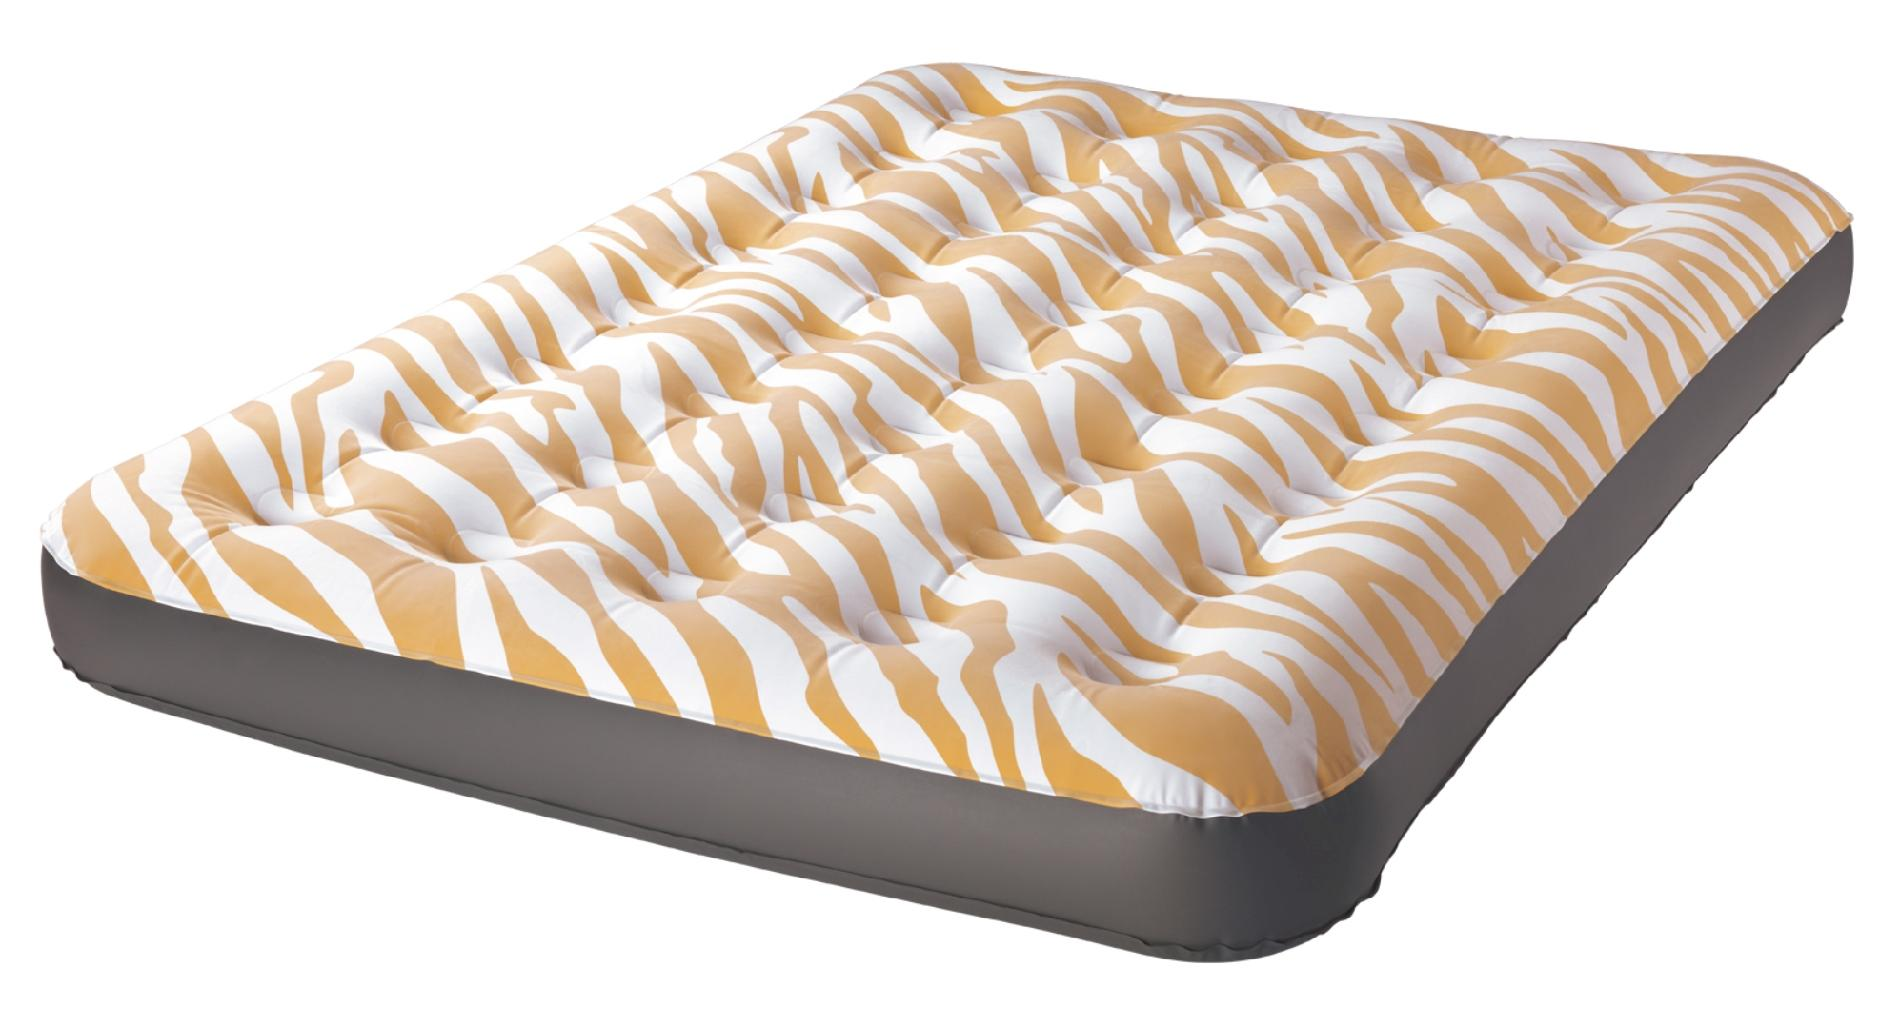 Baby Mattress Kmart Northwest Territory Full Air Mattress Kmart